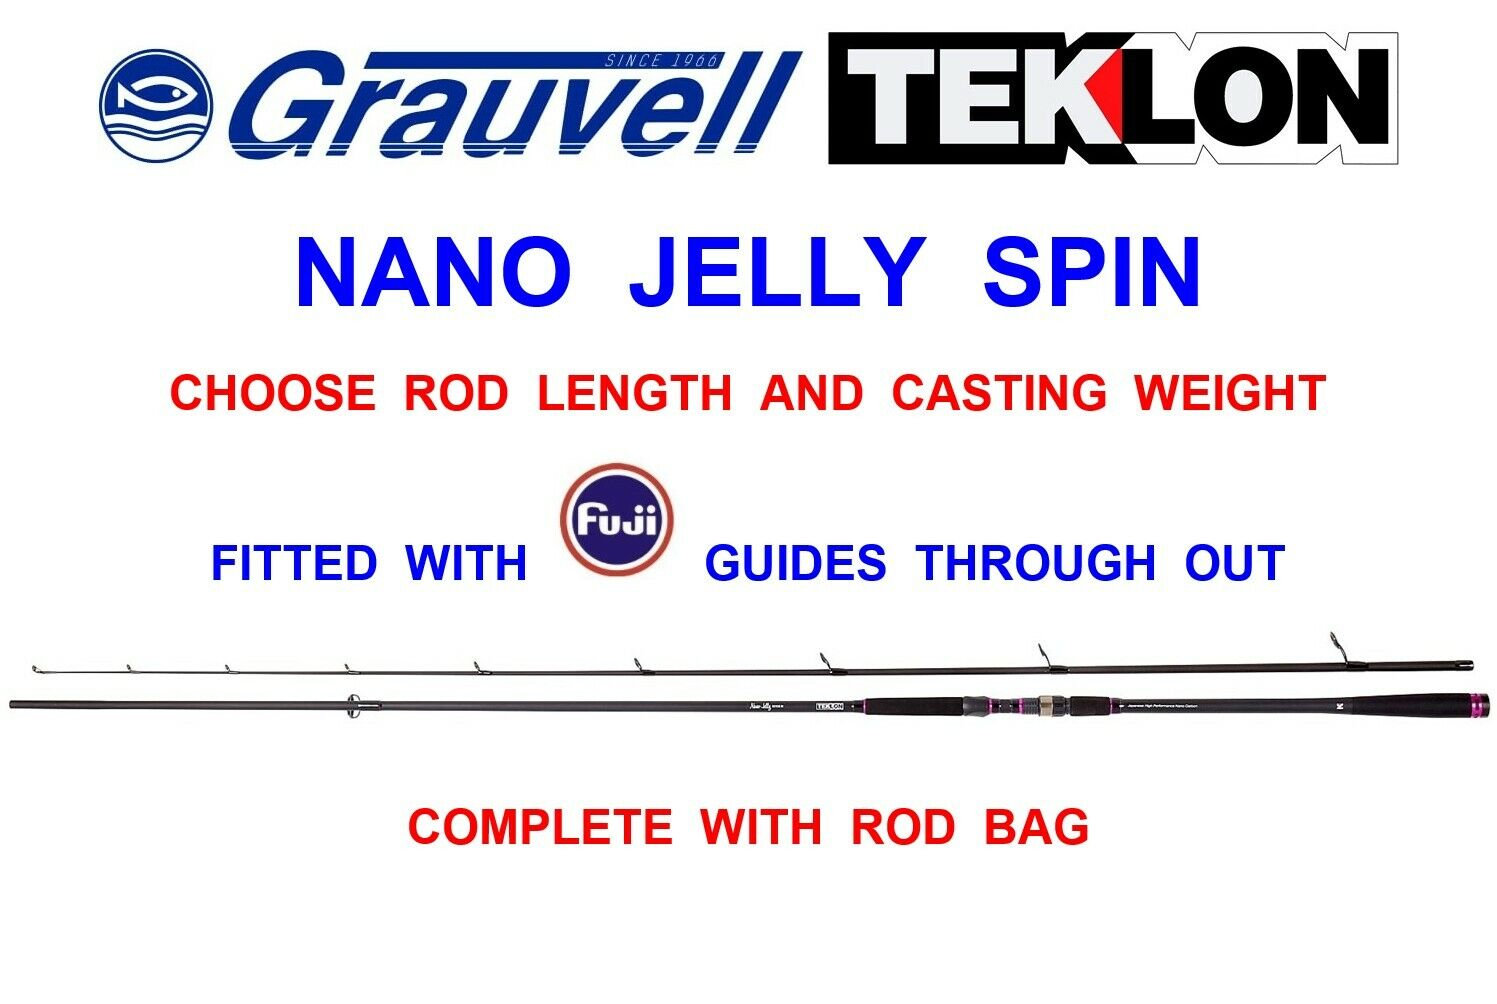 greyVELL TEKLON NANO JELLY SOFT LURE SPINNING ROD SEA SPIN GAME COARSE FISHING